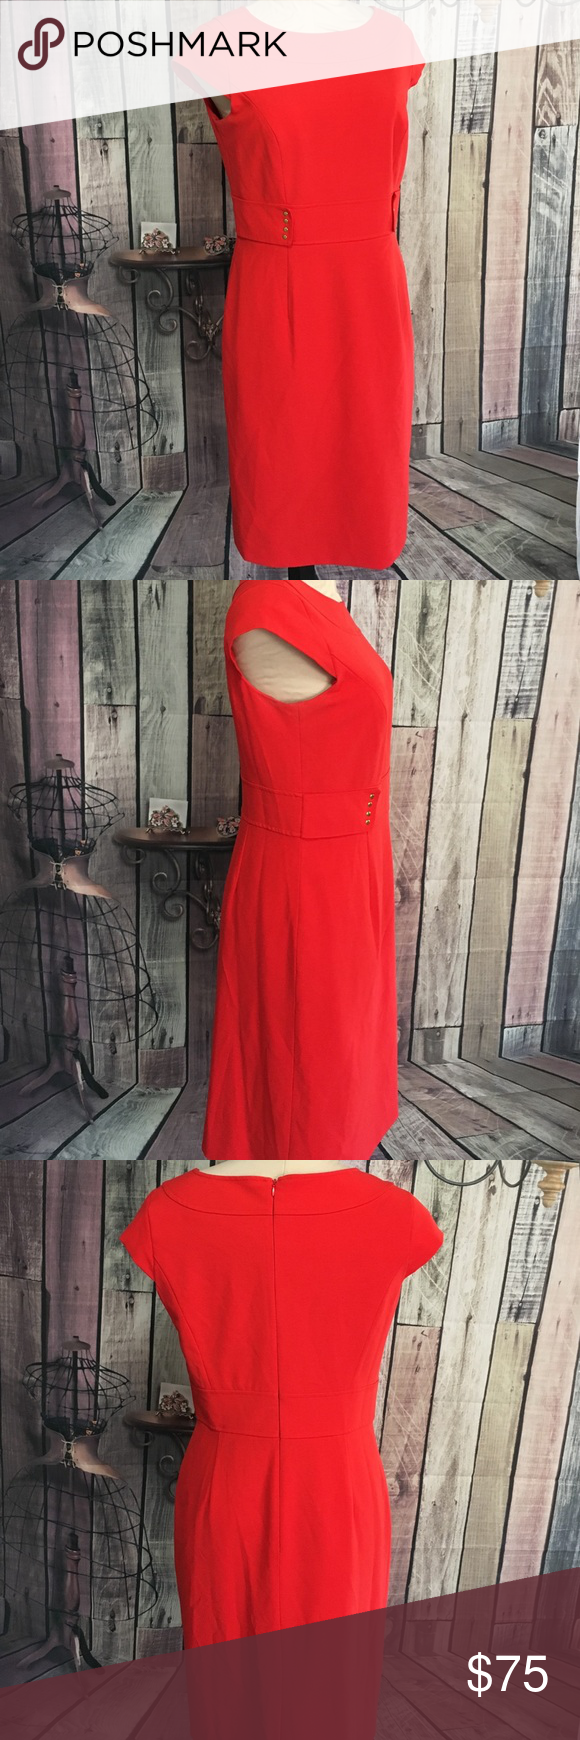 TAHARI Red Career Dress Bright bold sophisticated red. Belted look with gold hardware. Zipper back. Capped sleeve. About knee length. Pleated split detail back bottom. Tahari Dresses Midi